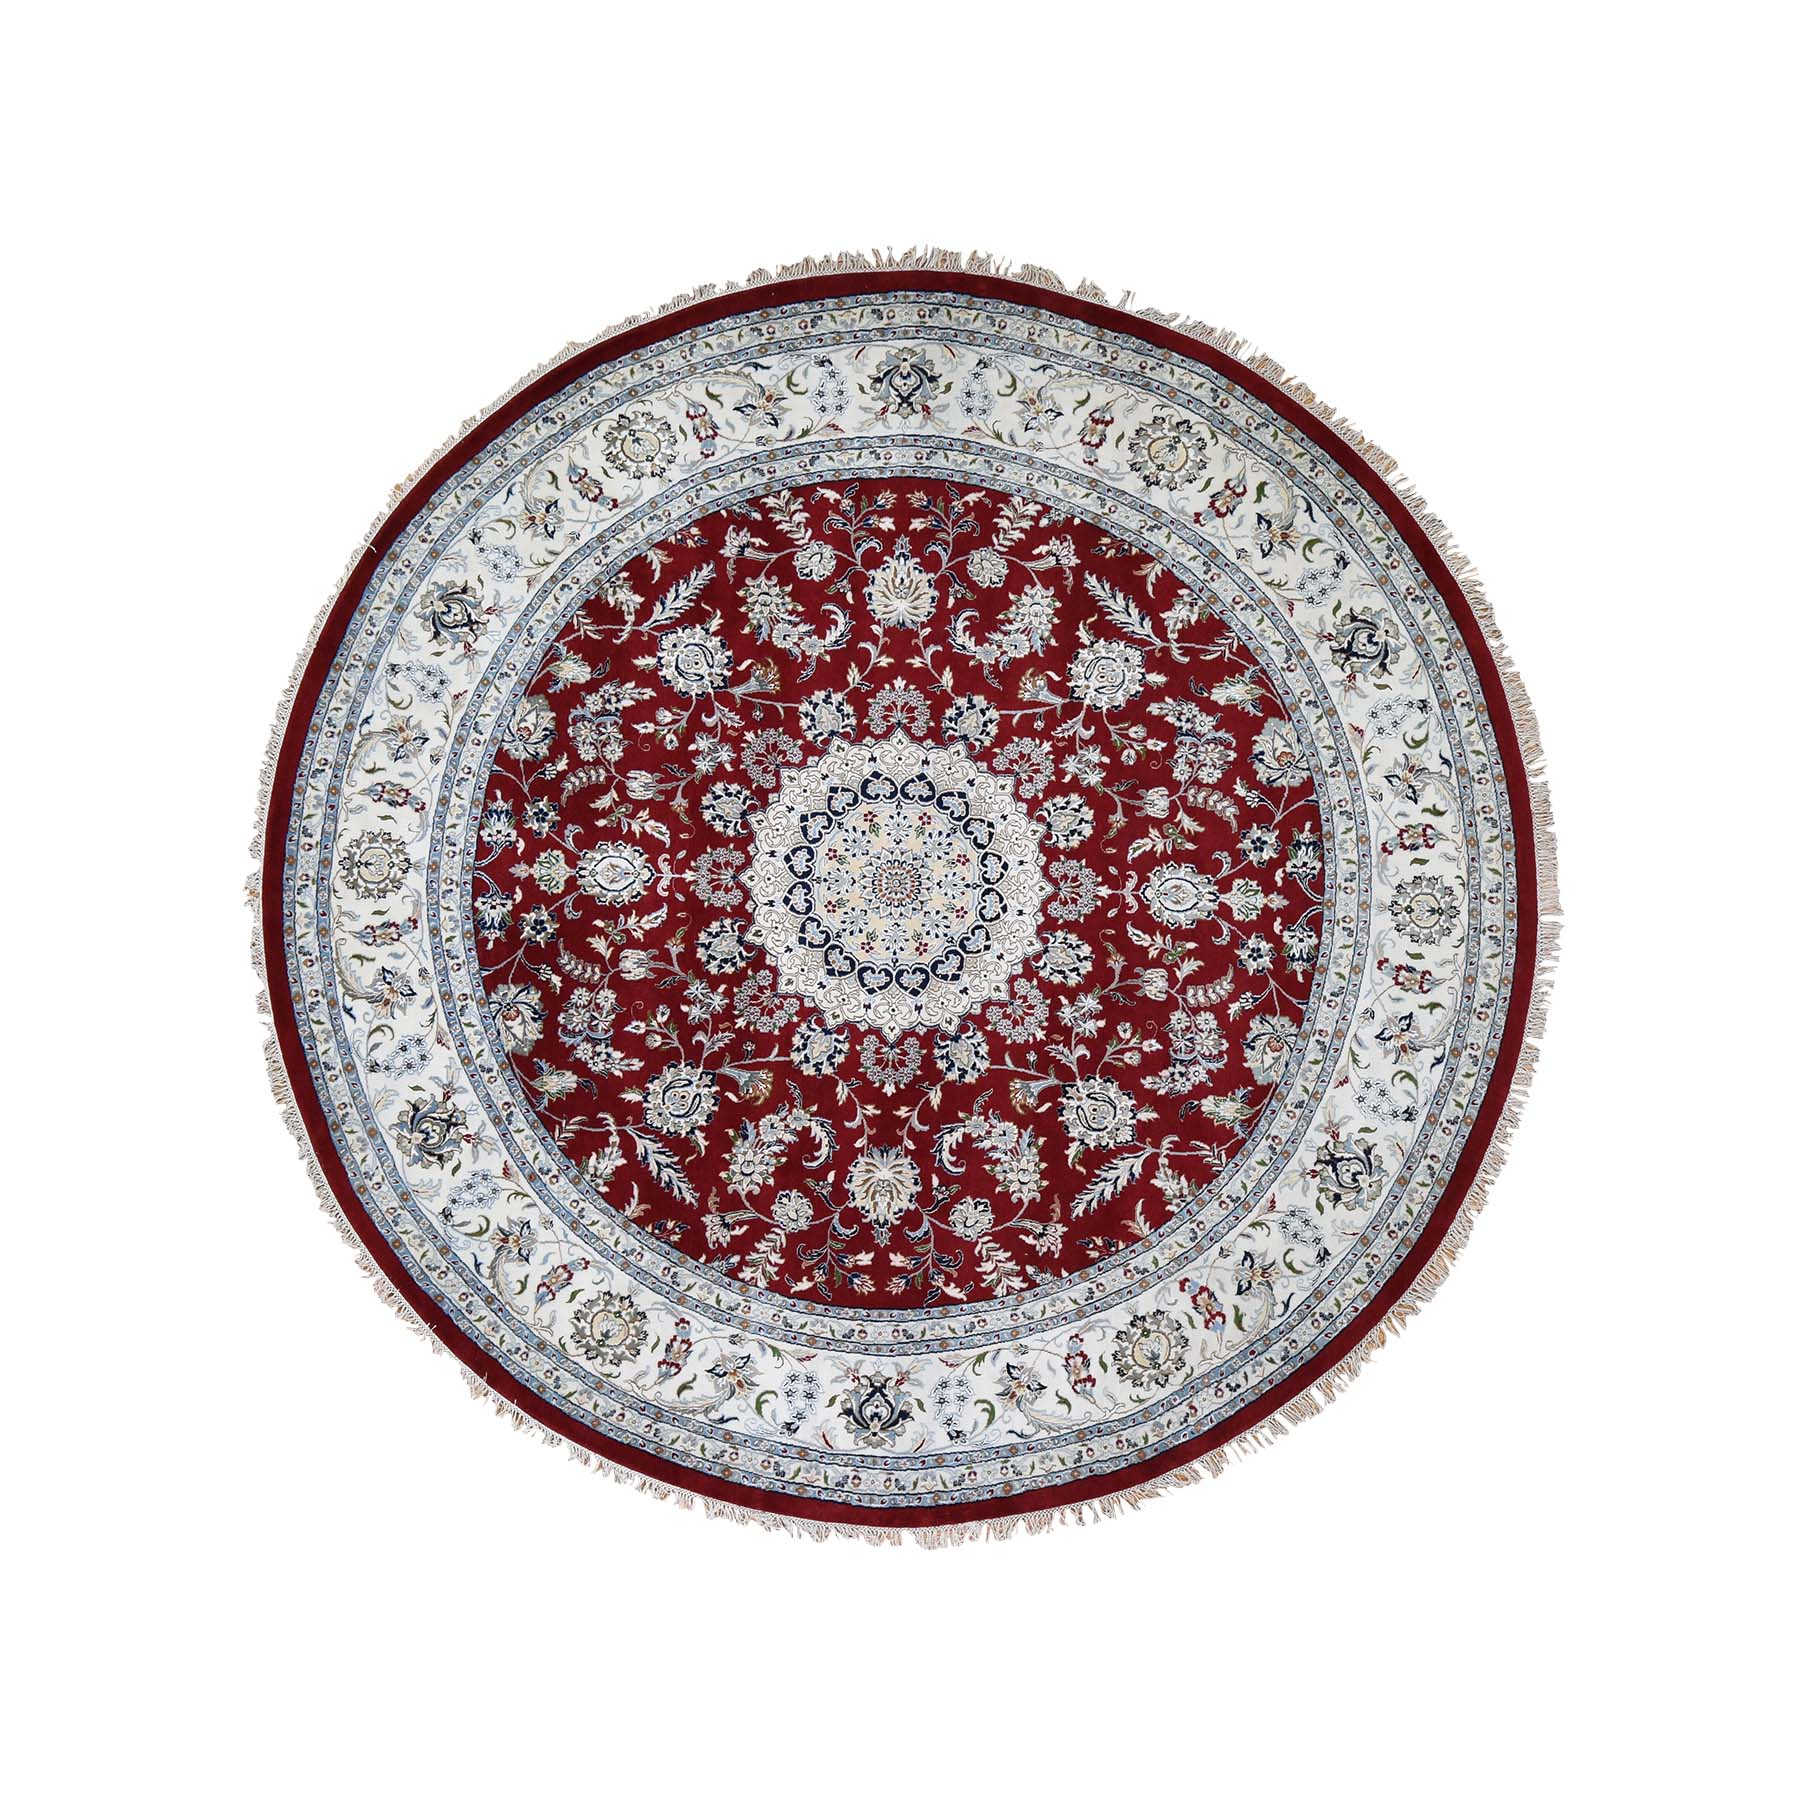 Pirniakan Collection Hand Knotted Red Rug No: 190598